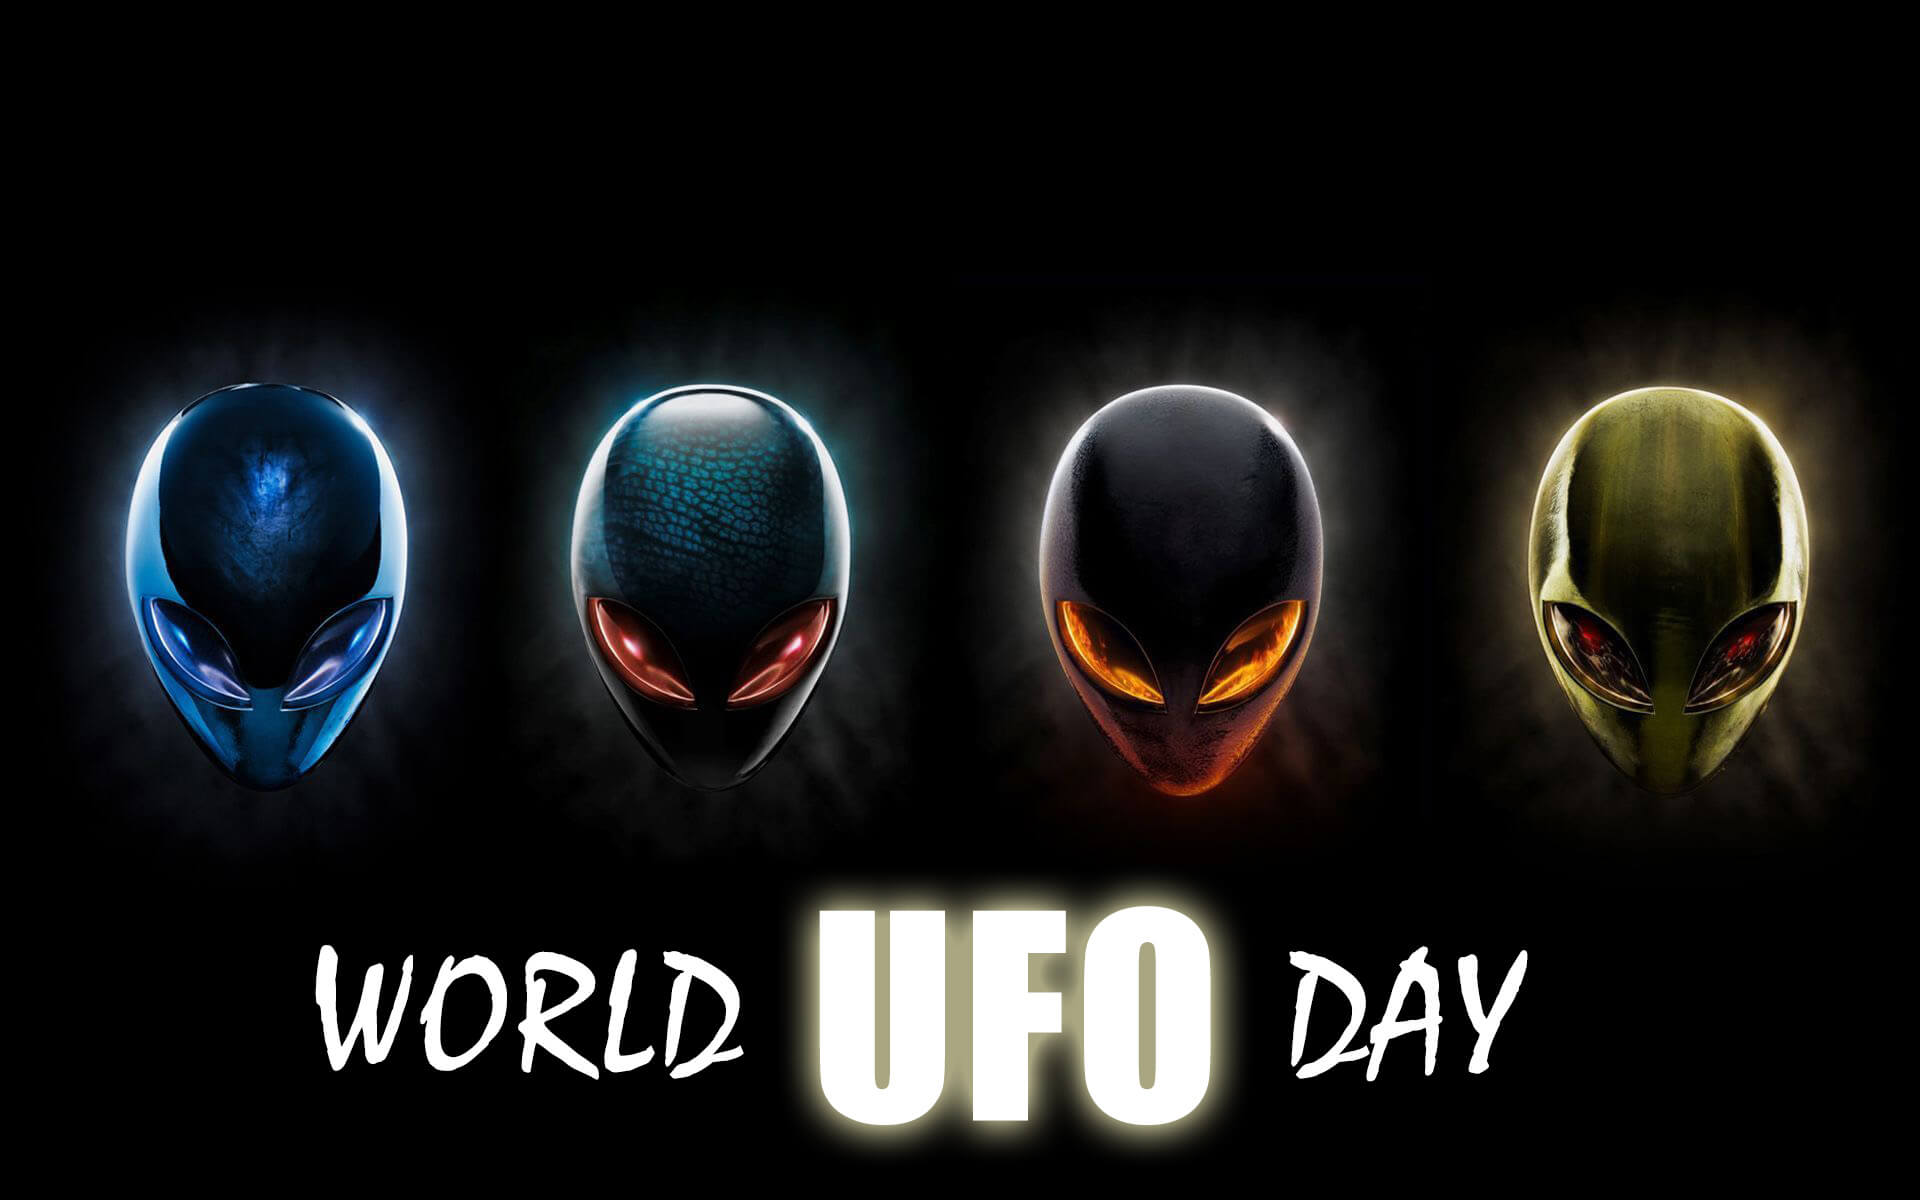 world ufo day aliens unidentified flying object hd wallpaper